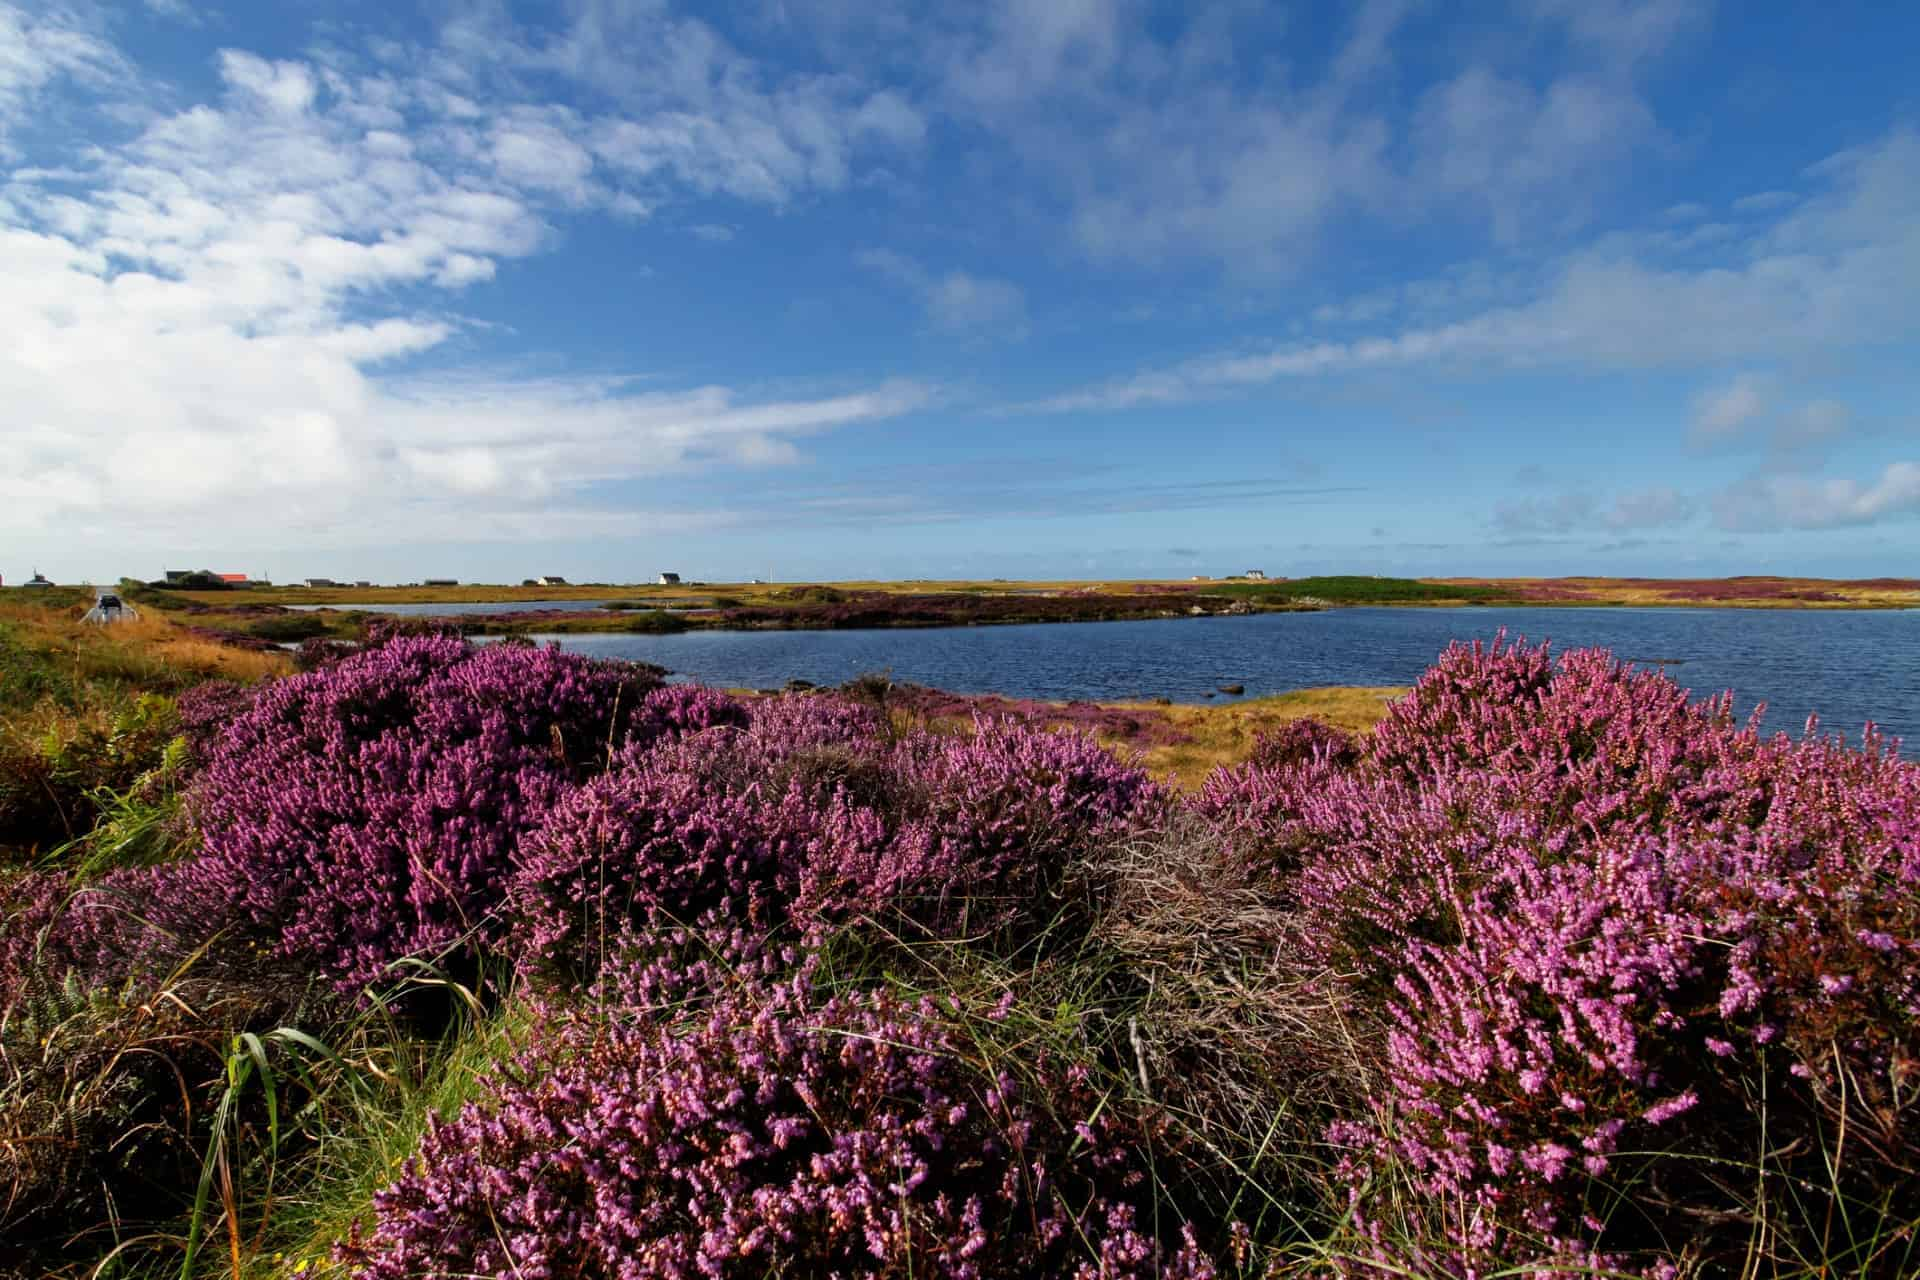 A heather field in Benbecula Outer Hebrides